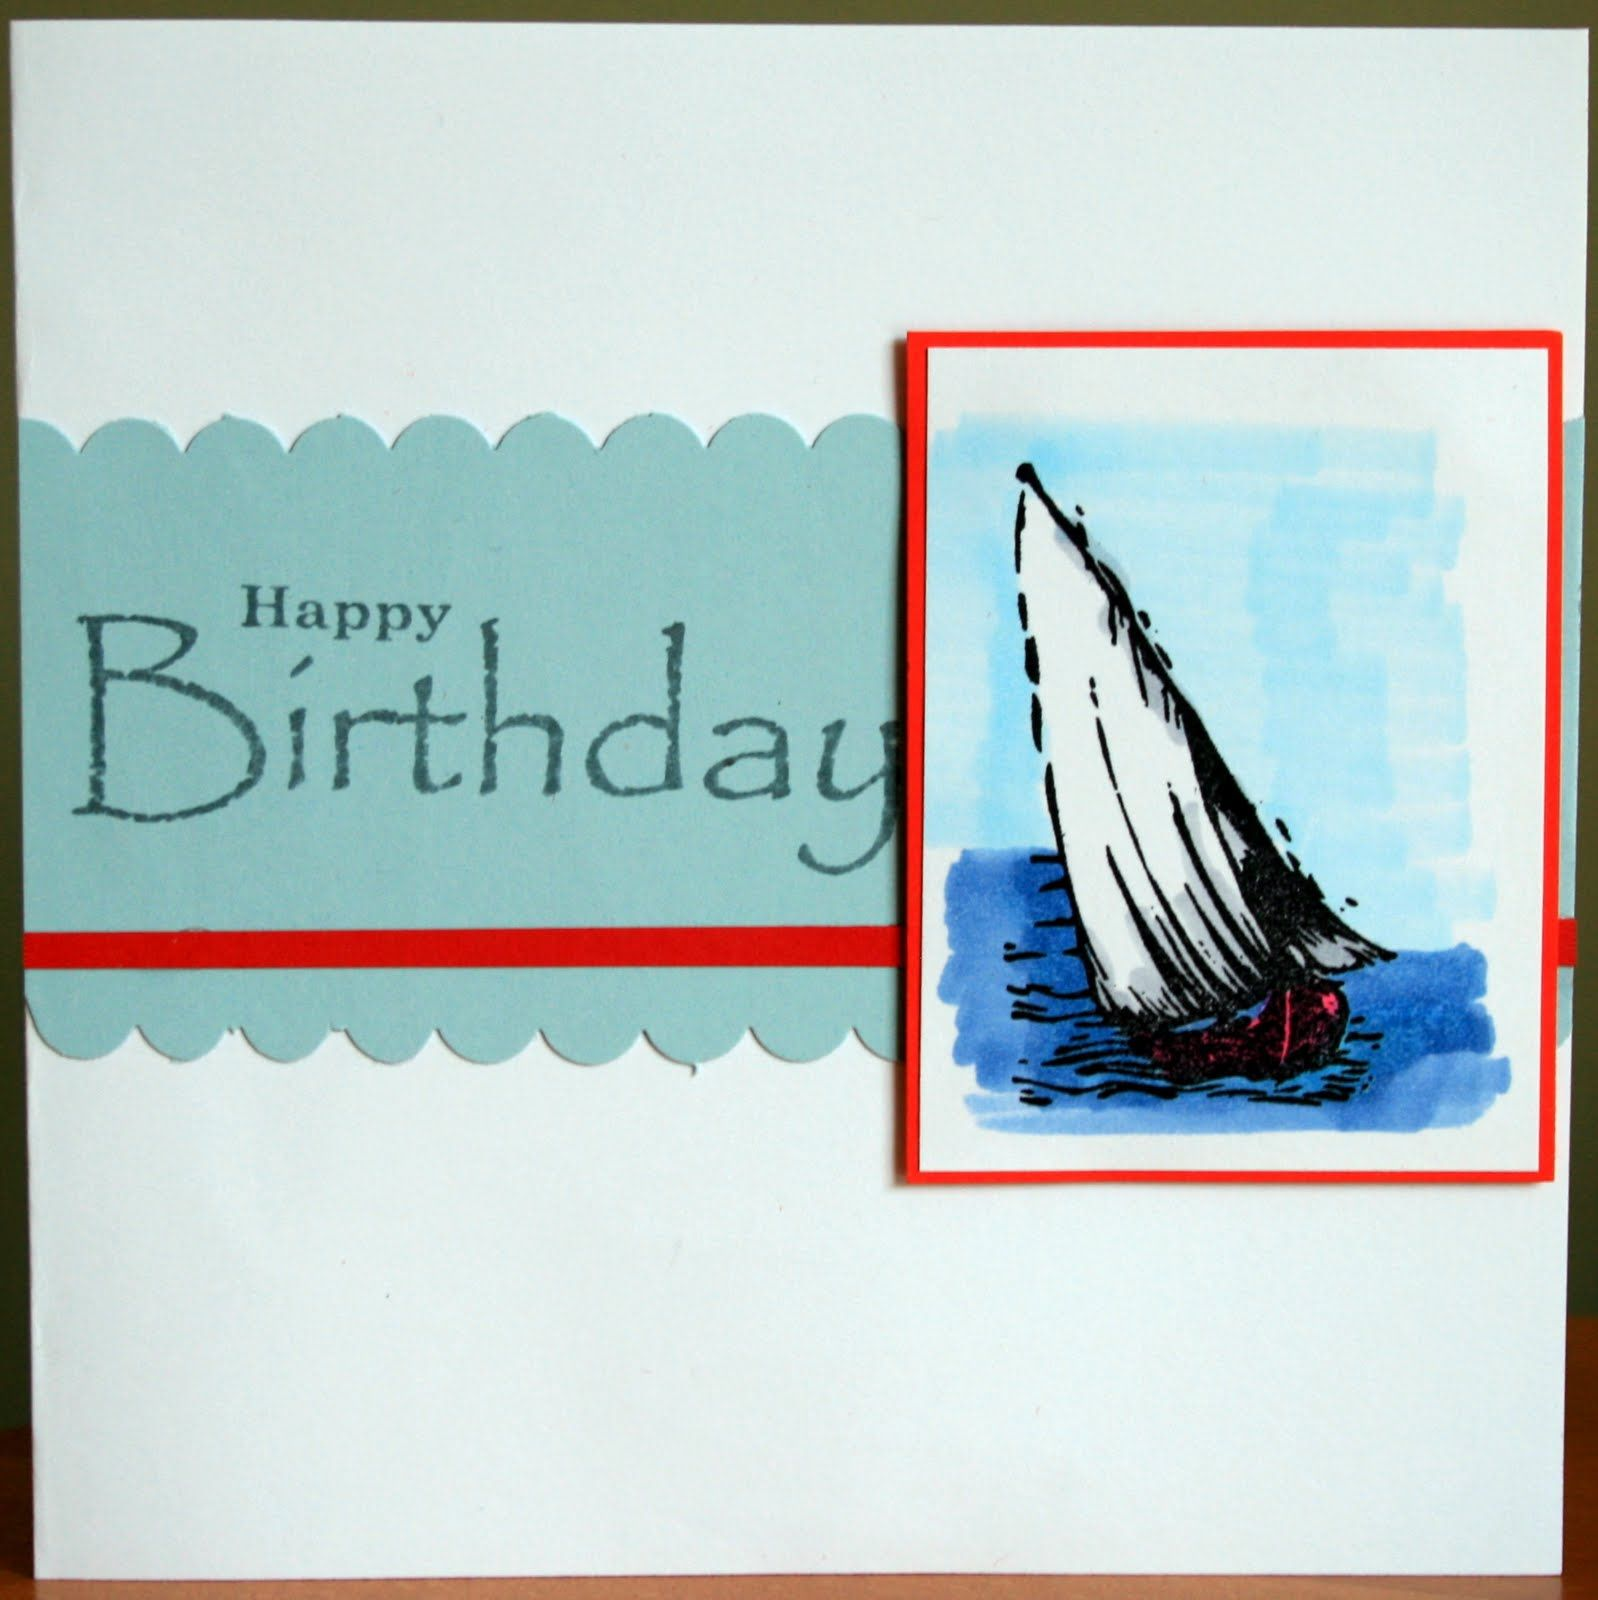 Free Birthday Cards for Men Birthday Cards for Men – Birthday Cards for Men